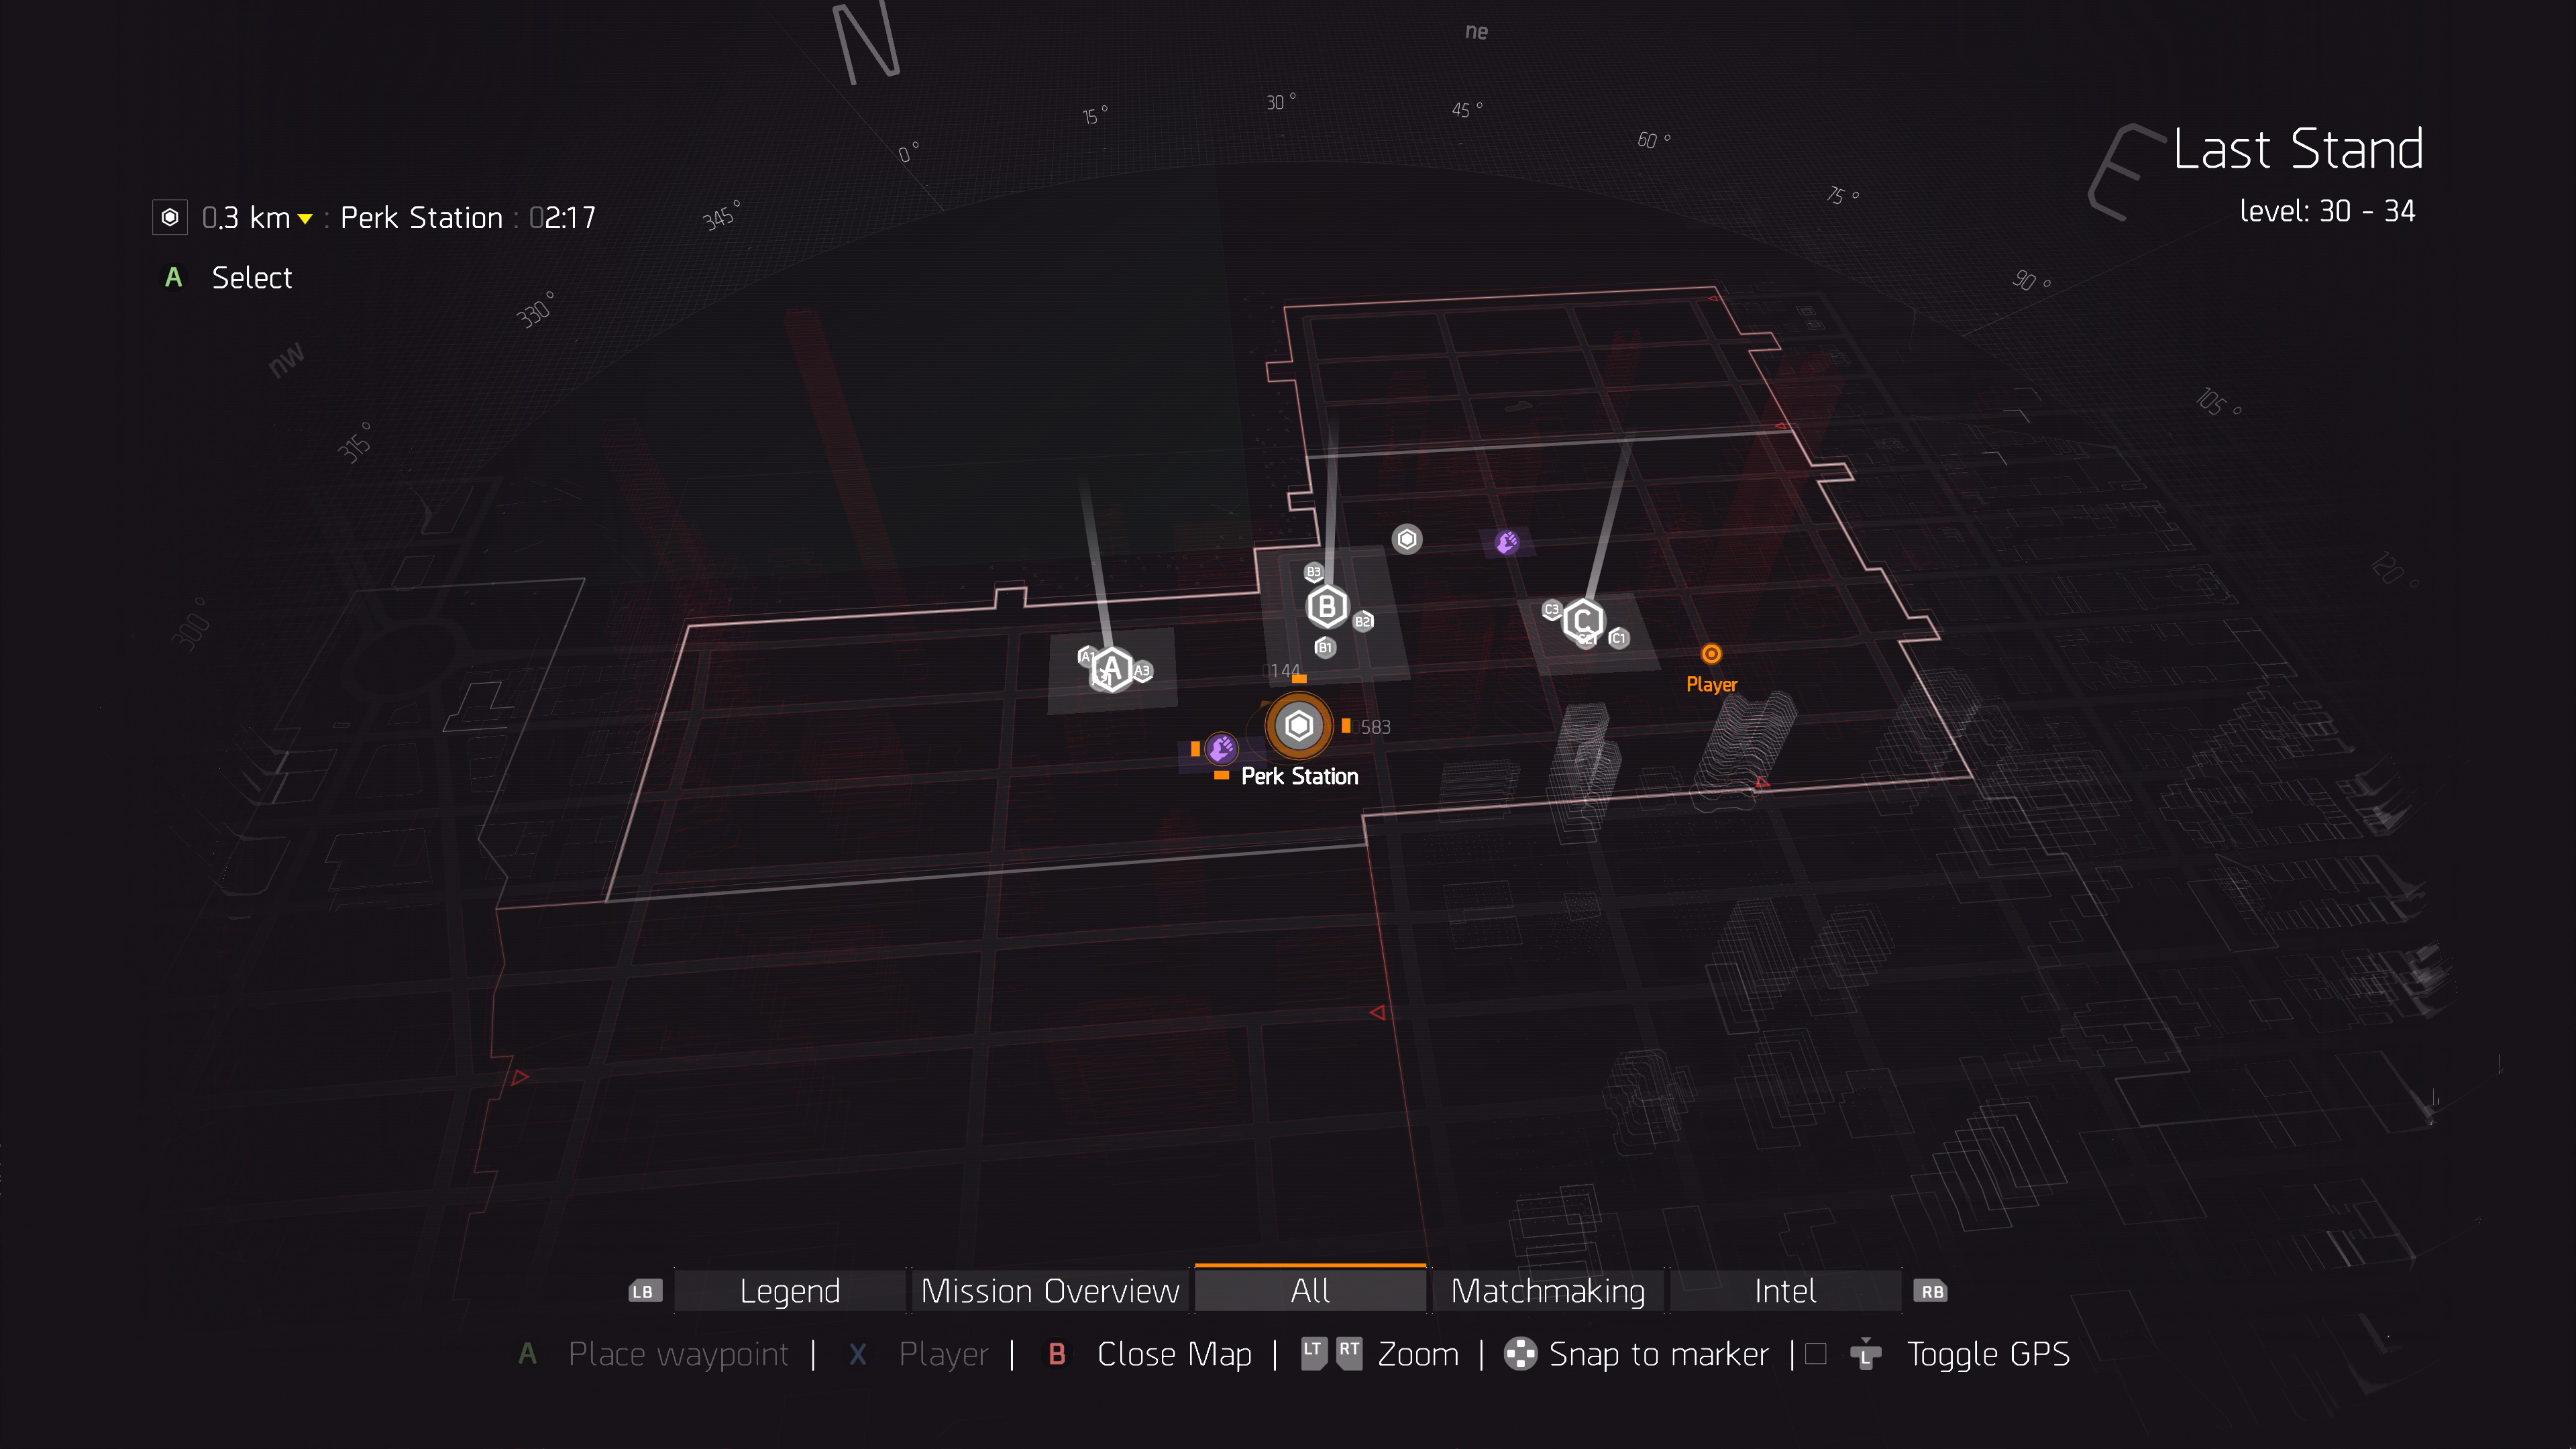 https://ubistatic9-a.akamaihd.net/resource/en-US/game/tomclancy-thedivision/game/map_282196.png